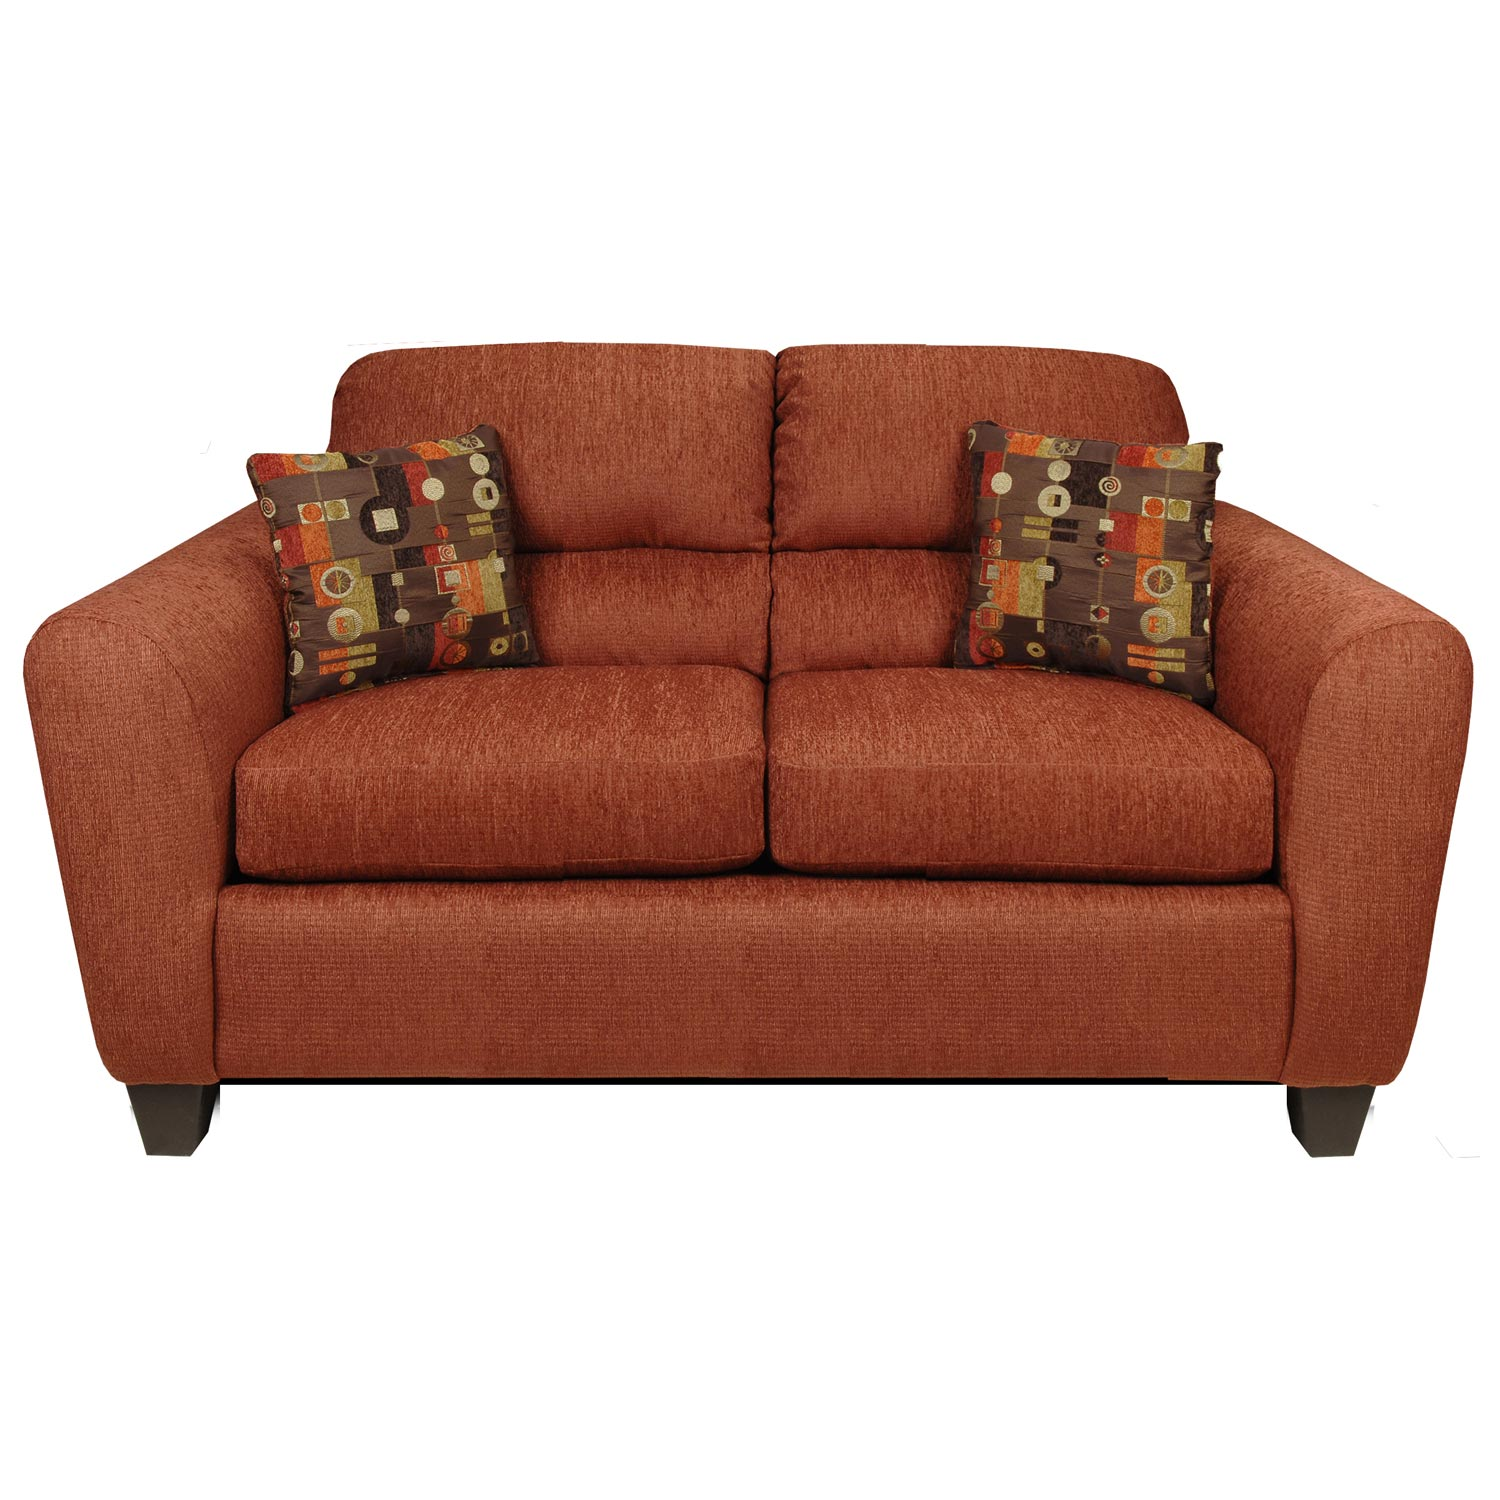 Linda Loveseat - Bustle Back, Dream Terra Cotta Fabric